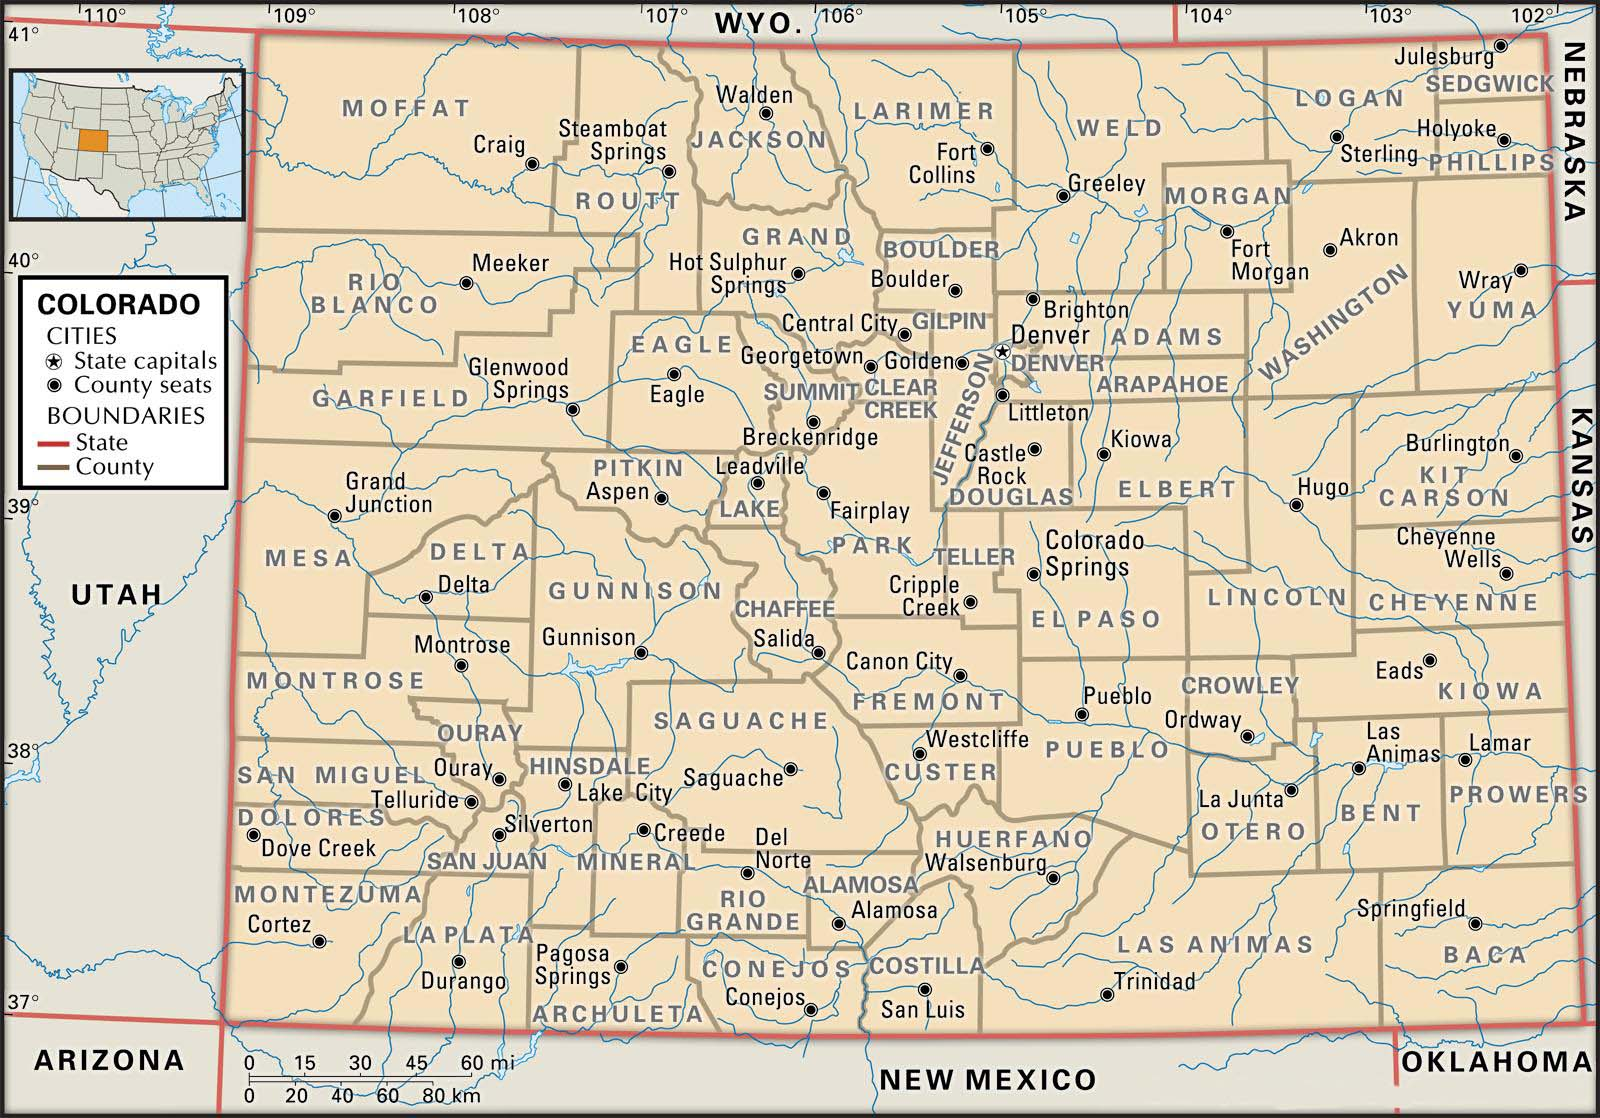 Delta County Colorado Map.State And County Maps Of Colorado